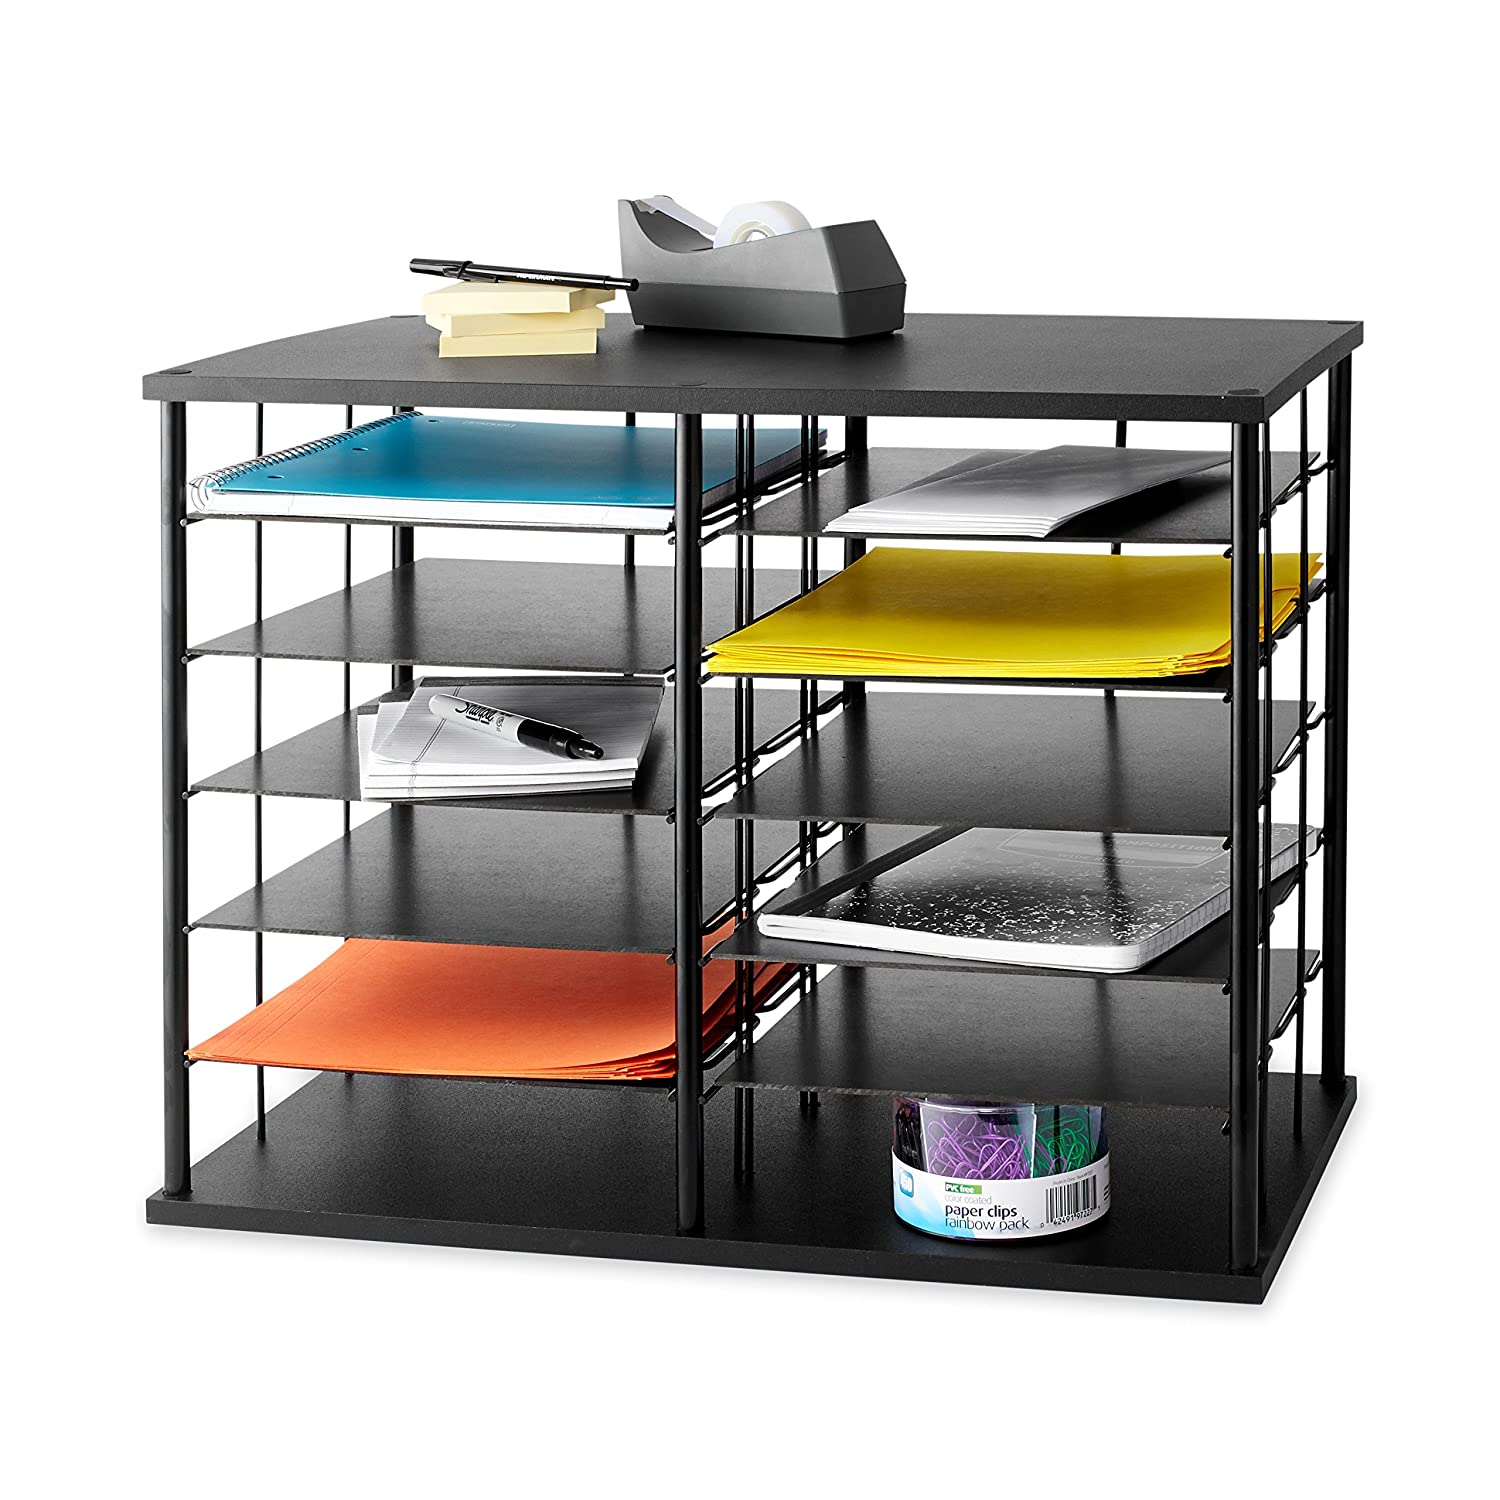 Rubbermaid 12-Slot Organizer - what to get your boyfriend's for christmas 2016